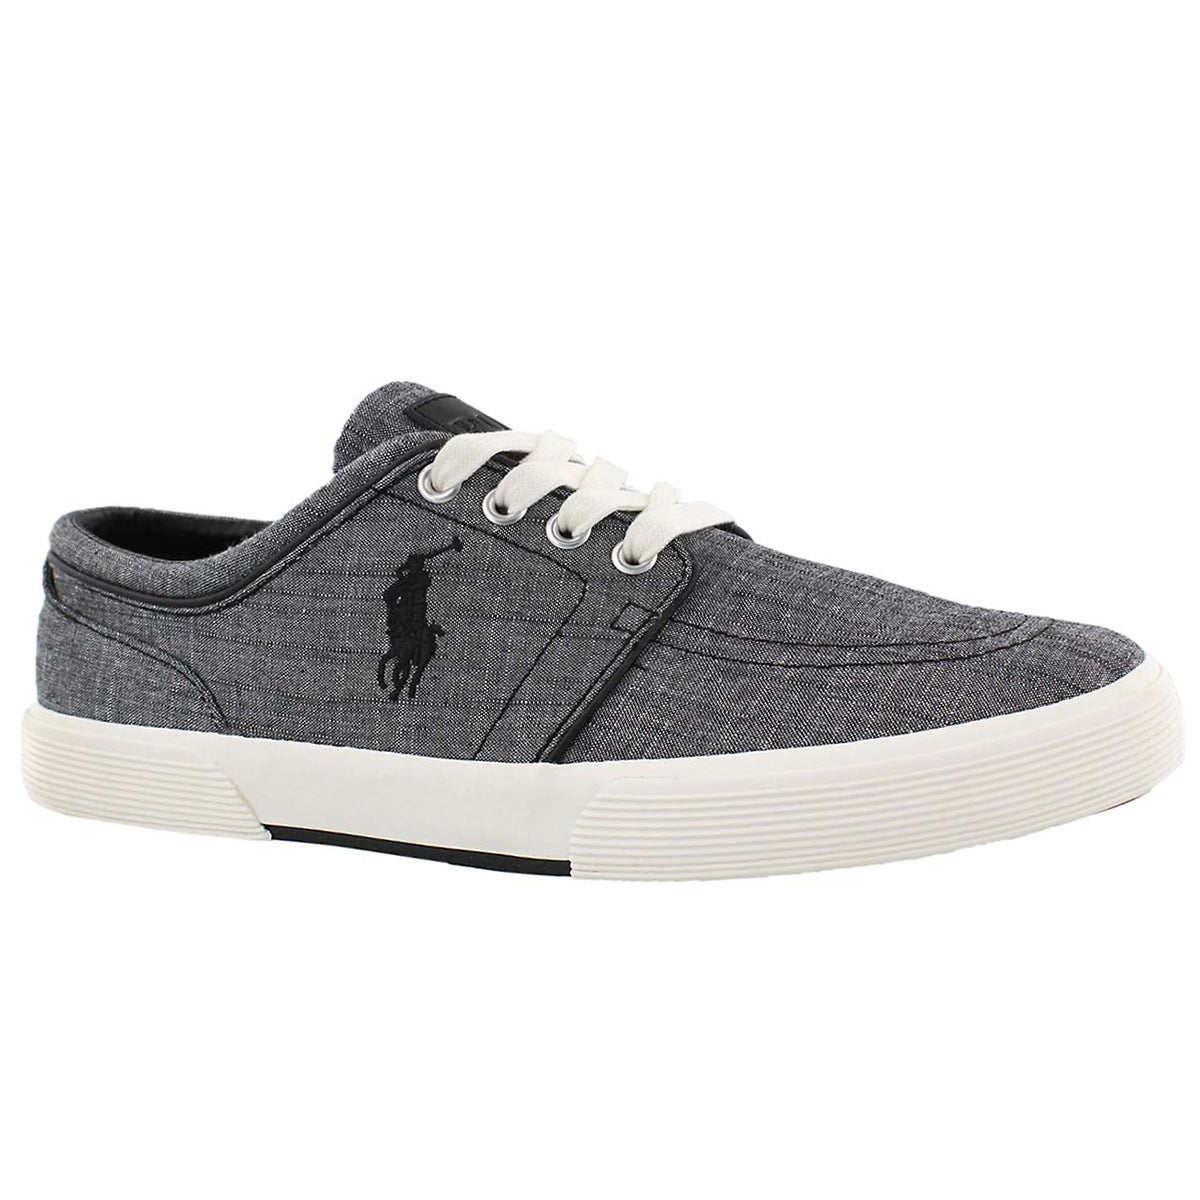 Men's FAXON LOW faded black chambray sneakers